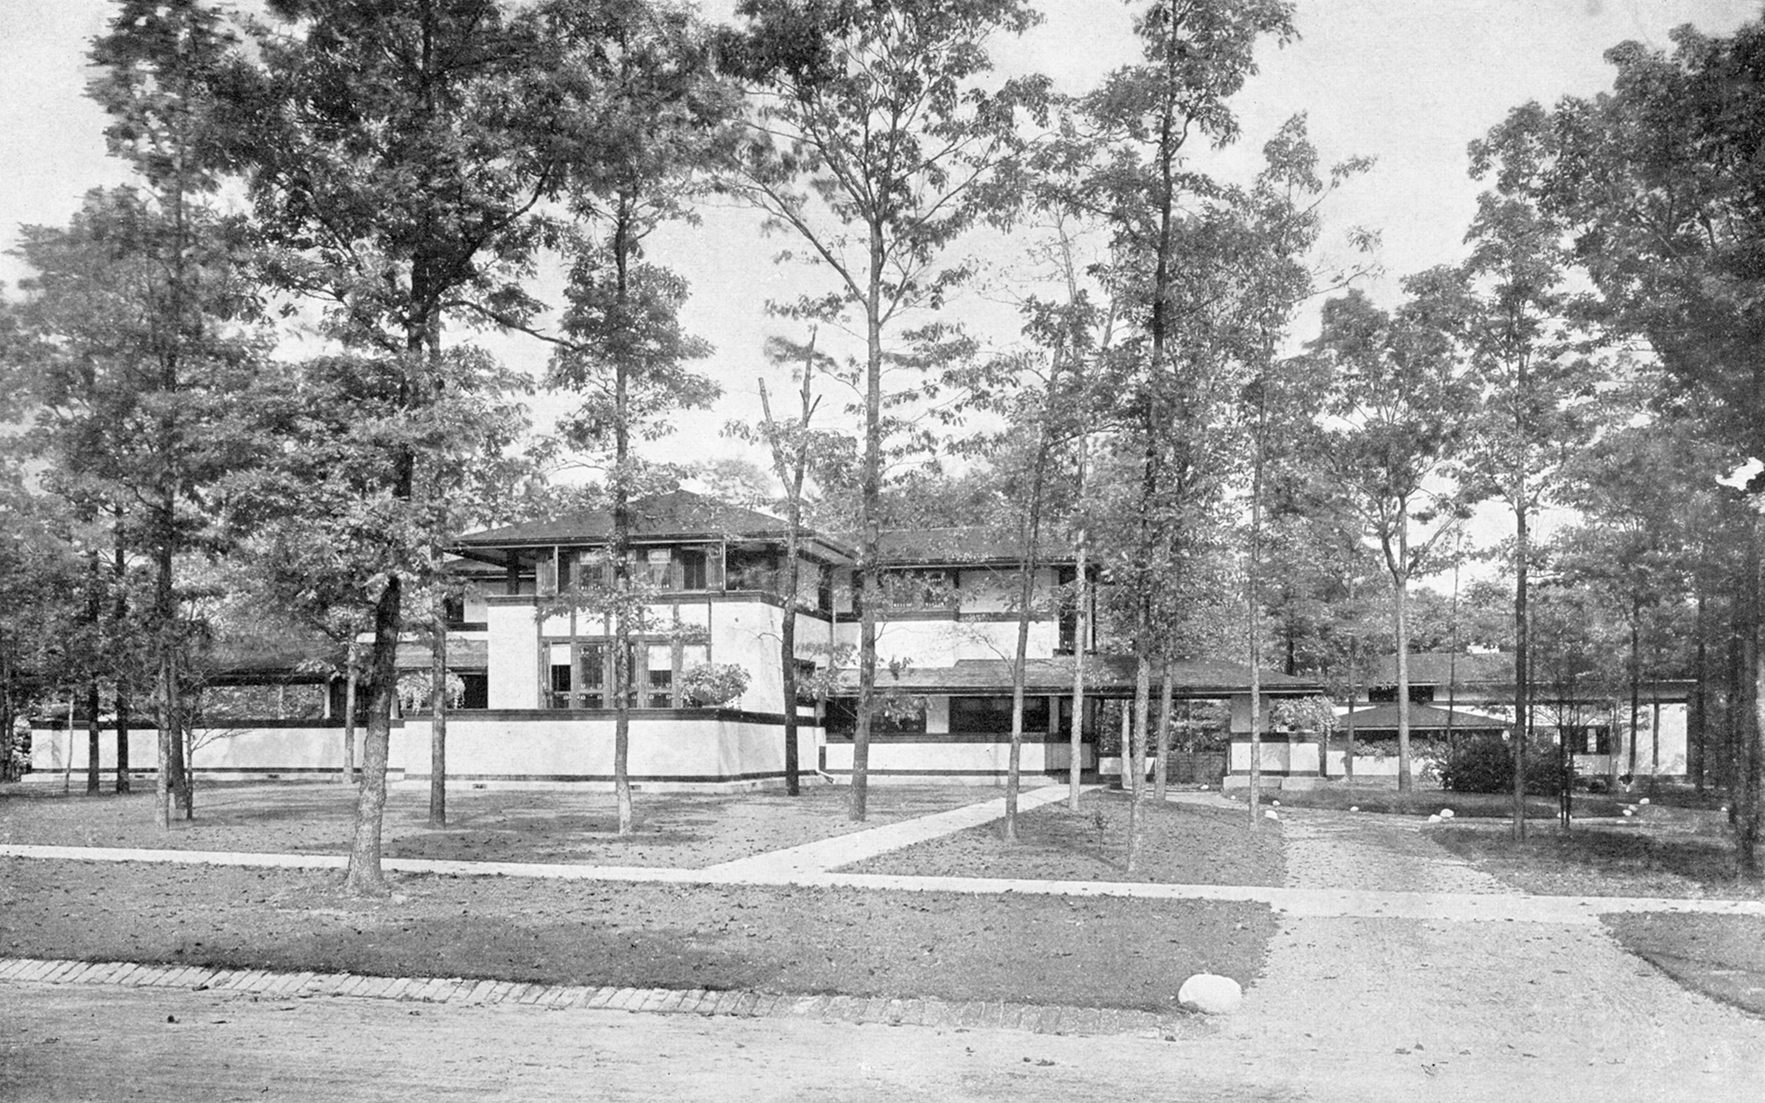 View of the Ward W. Willits House from the southeast, Highland Park, Illinois, circa 1910. Photo Chicago Architectural Photography CompanyFrank Lloyd Wright Preservation TrustGetty Images